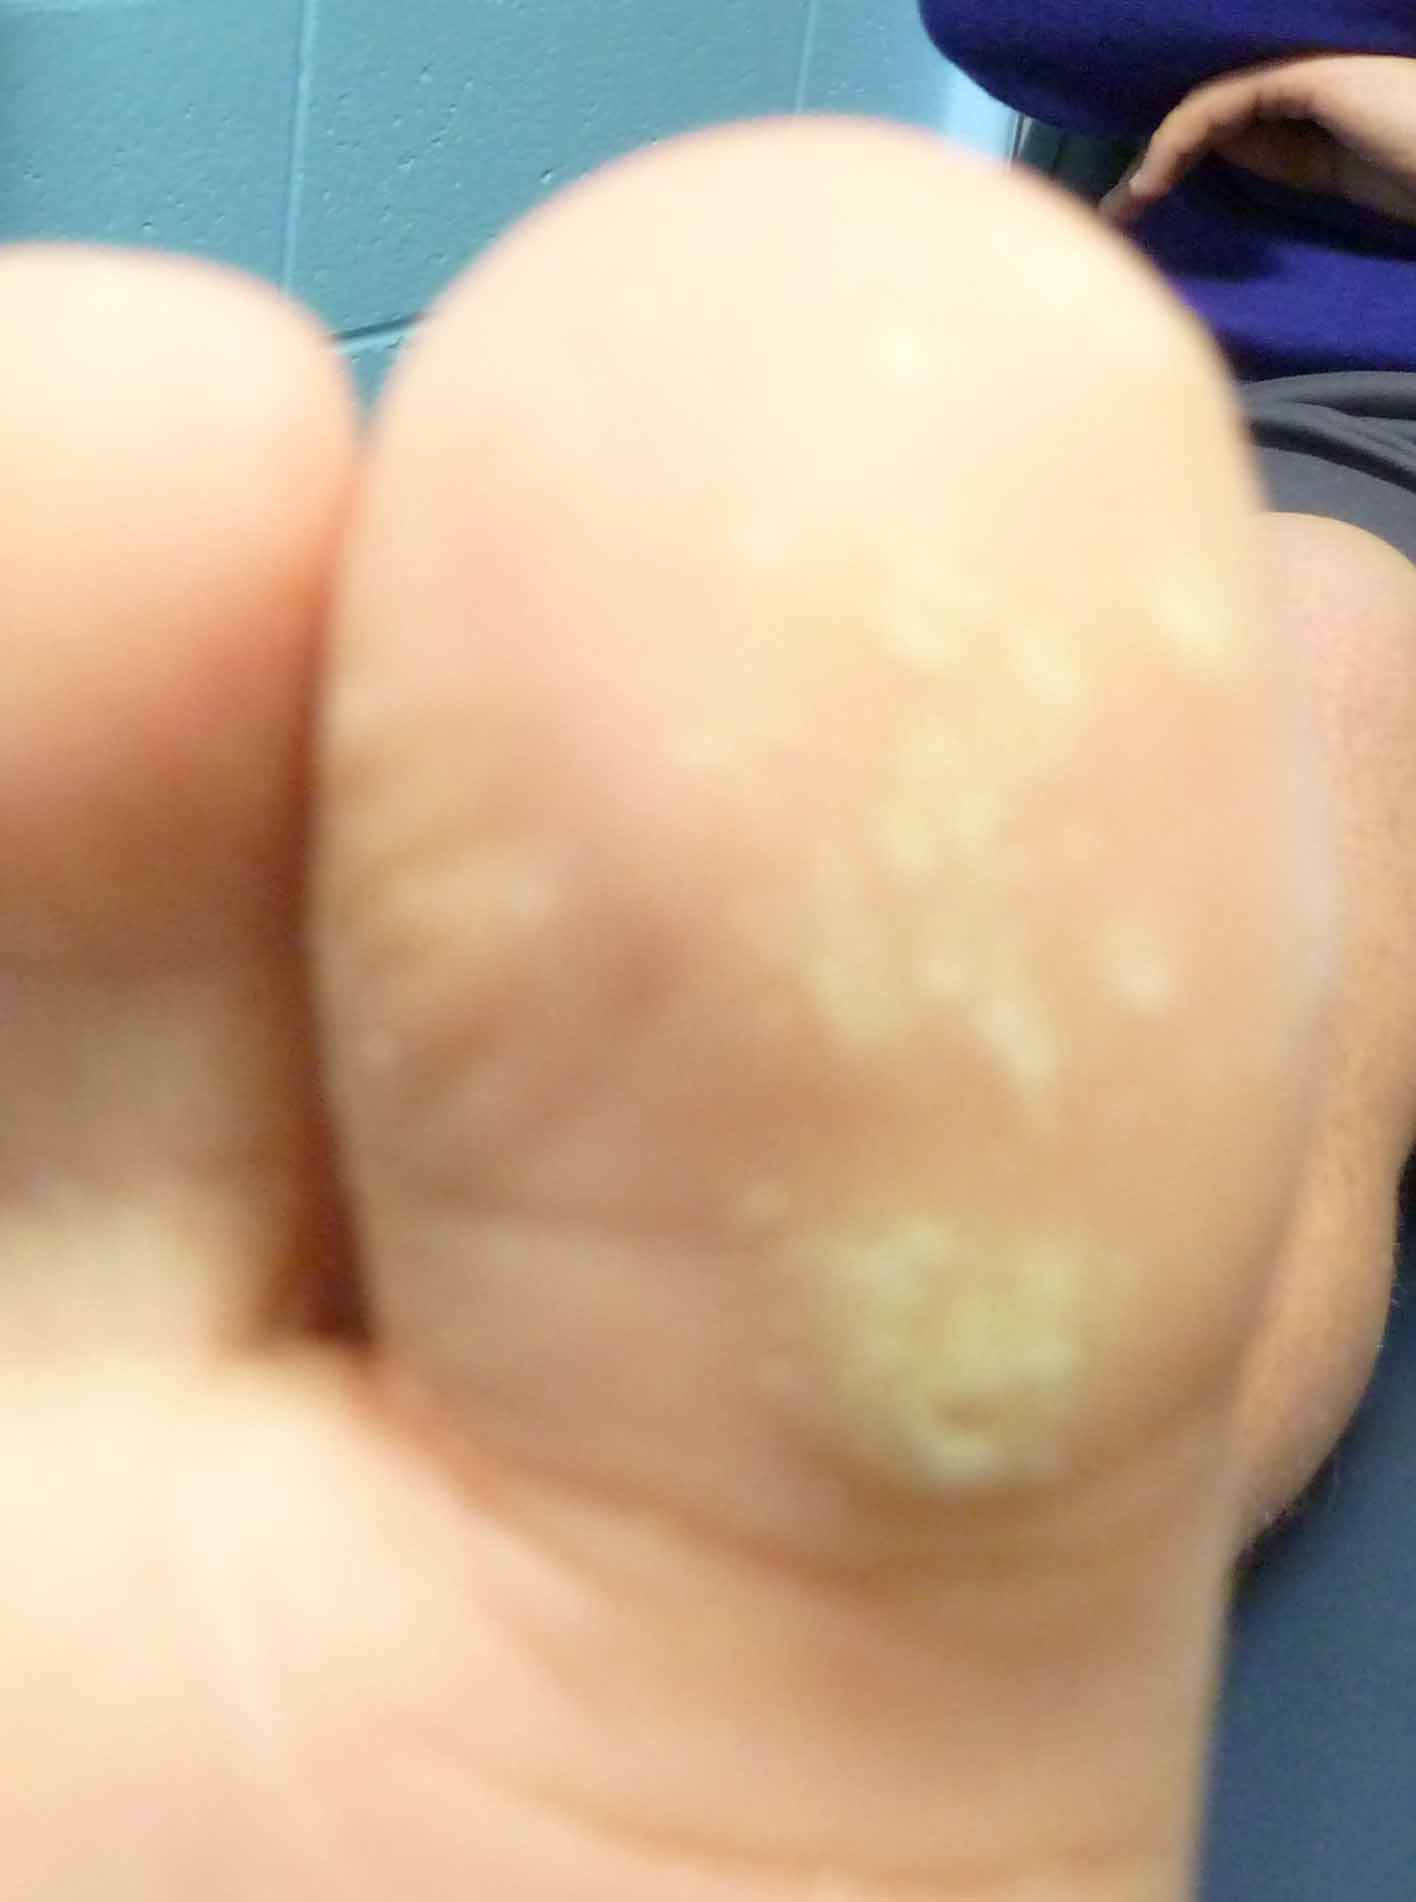 Treatment for plantar wart on toe